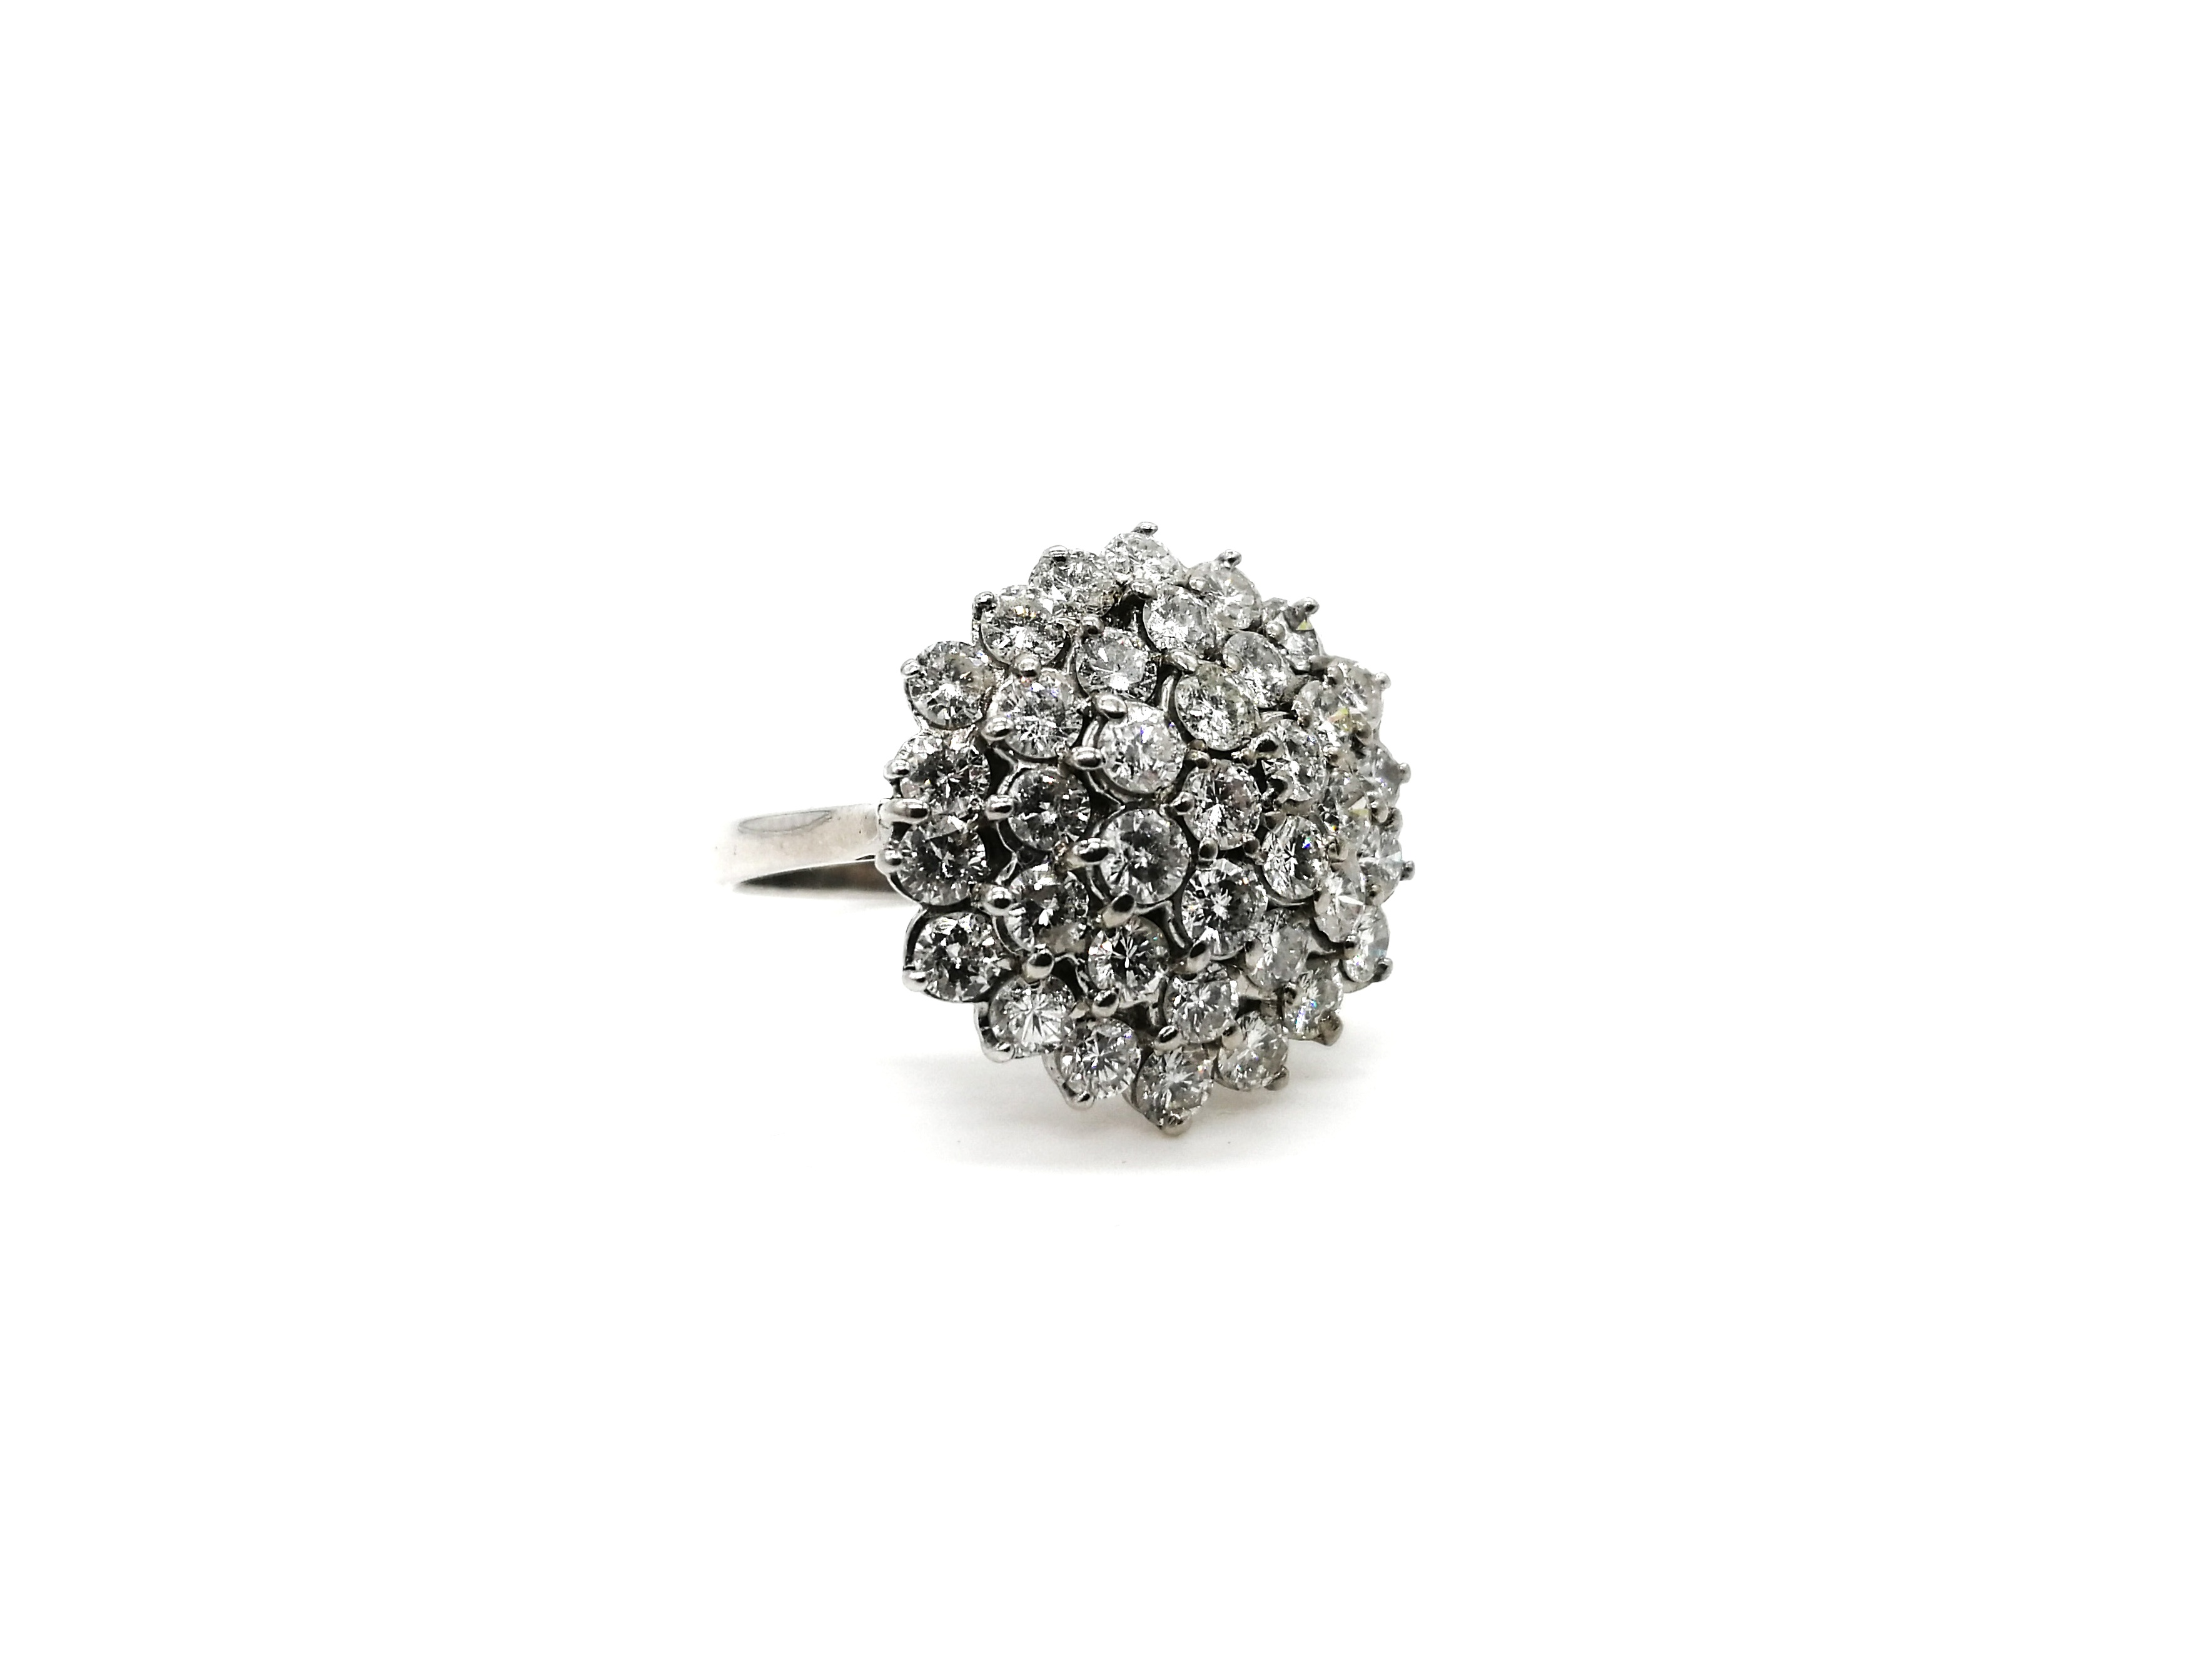 Vintage 1970s 18ct White Gold Classic 3.20ct Diamond Cluster Ring